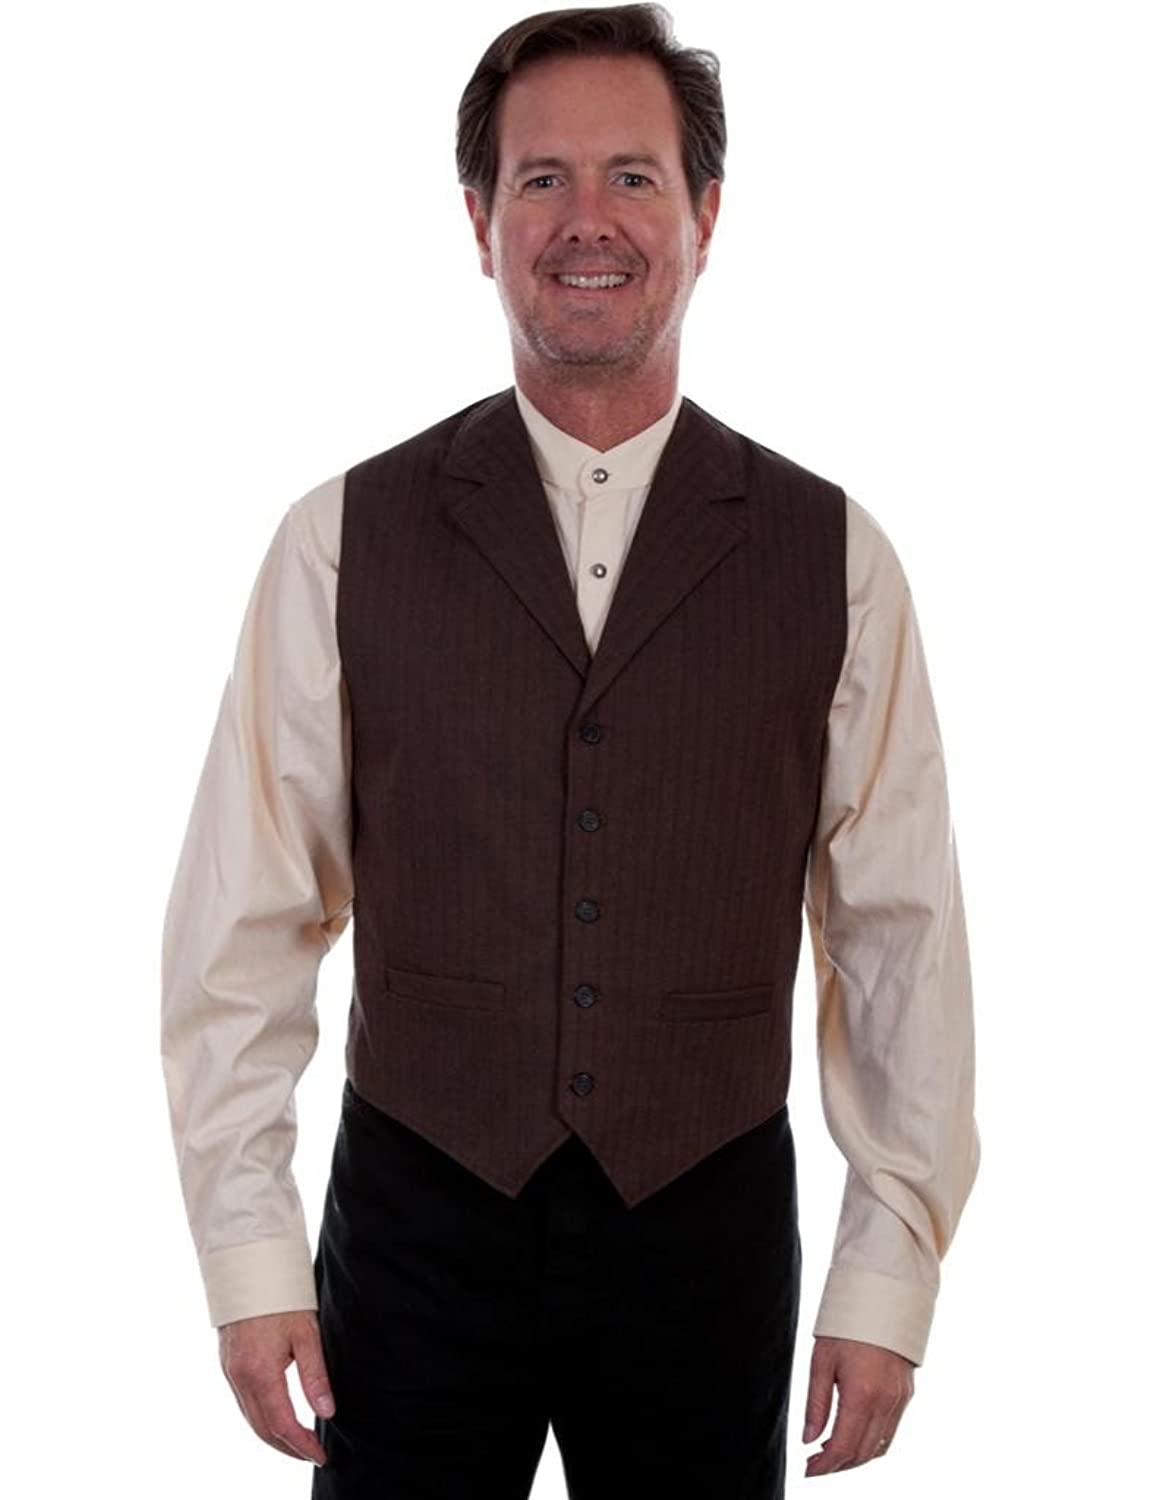 Men's Steampunk Vests, Waistcoats, Corsets Scully Western Vest Mens Notched Lapel Pinstripe Button Lined 541194 $81.00 AT vintagedancer.com